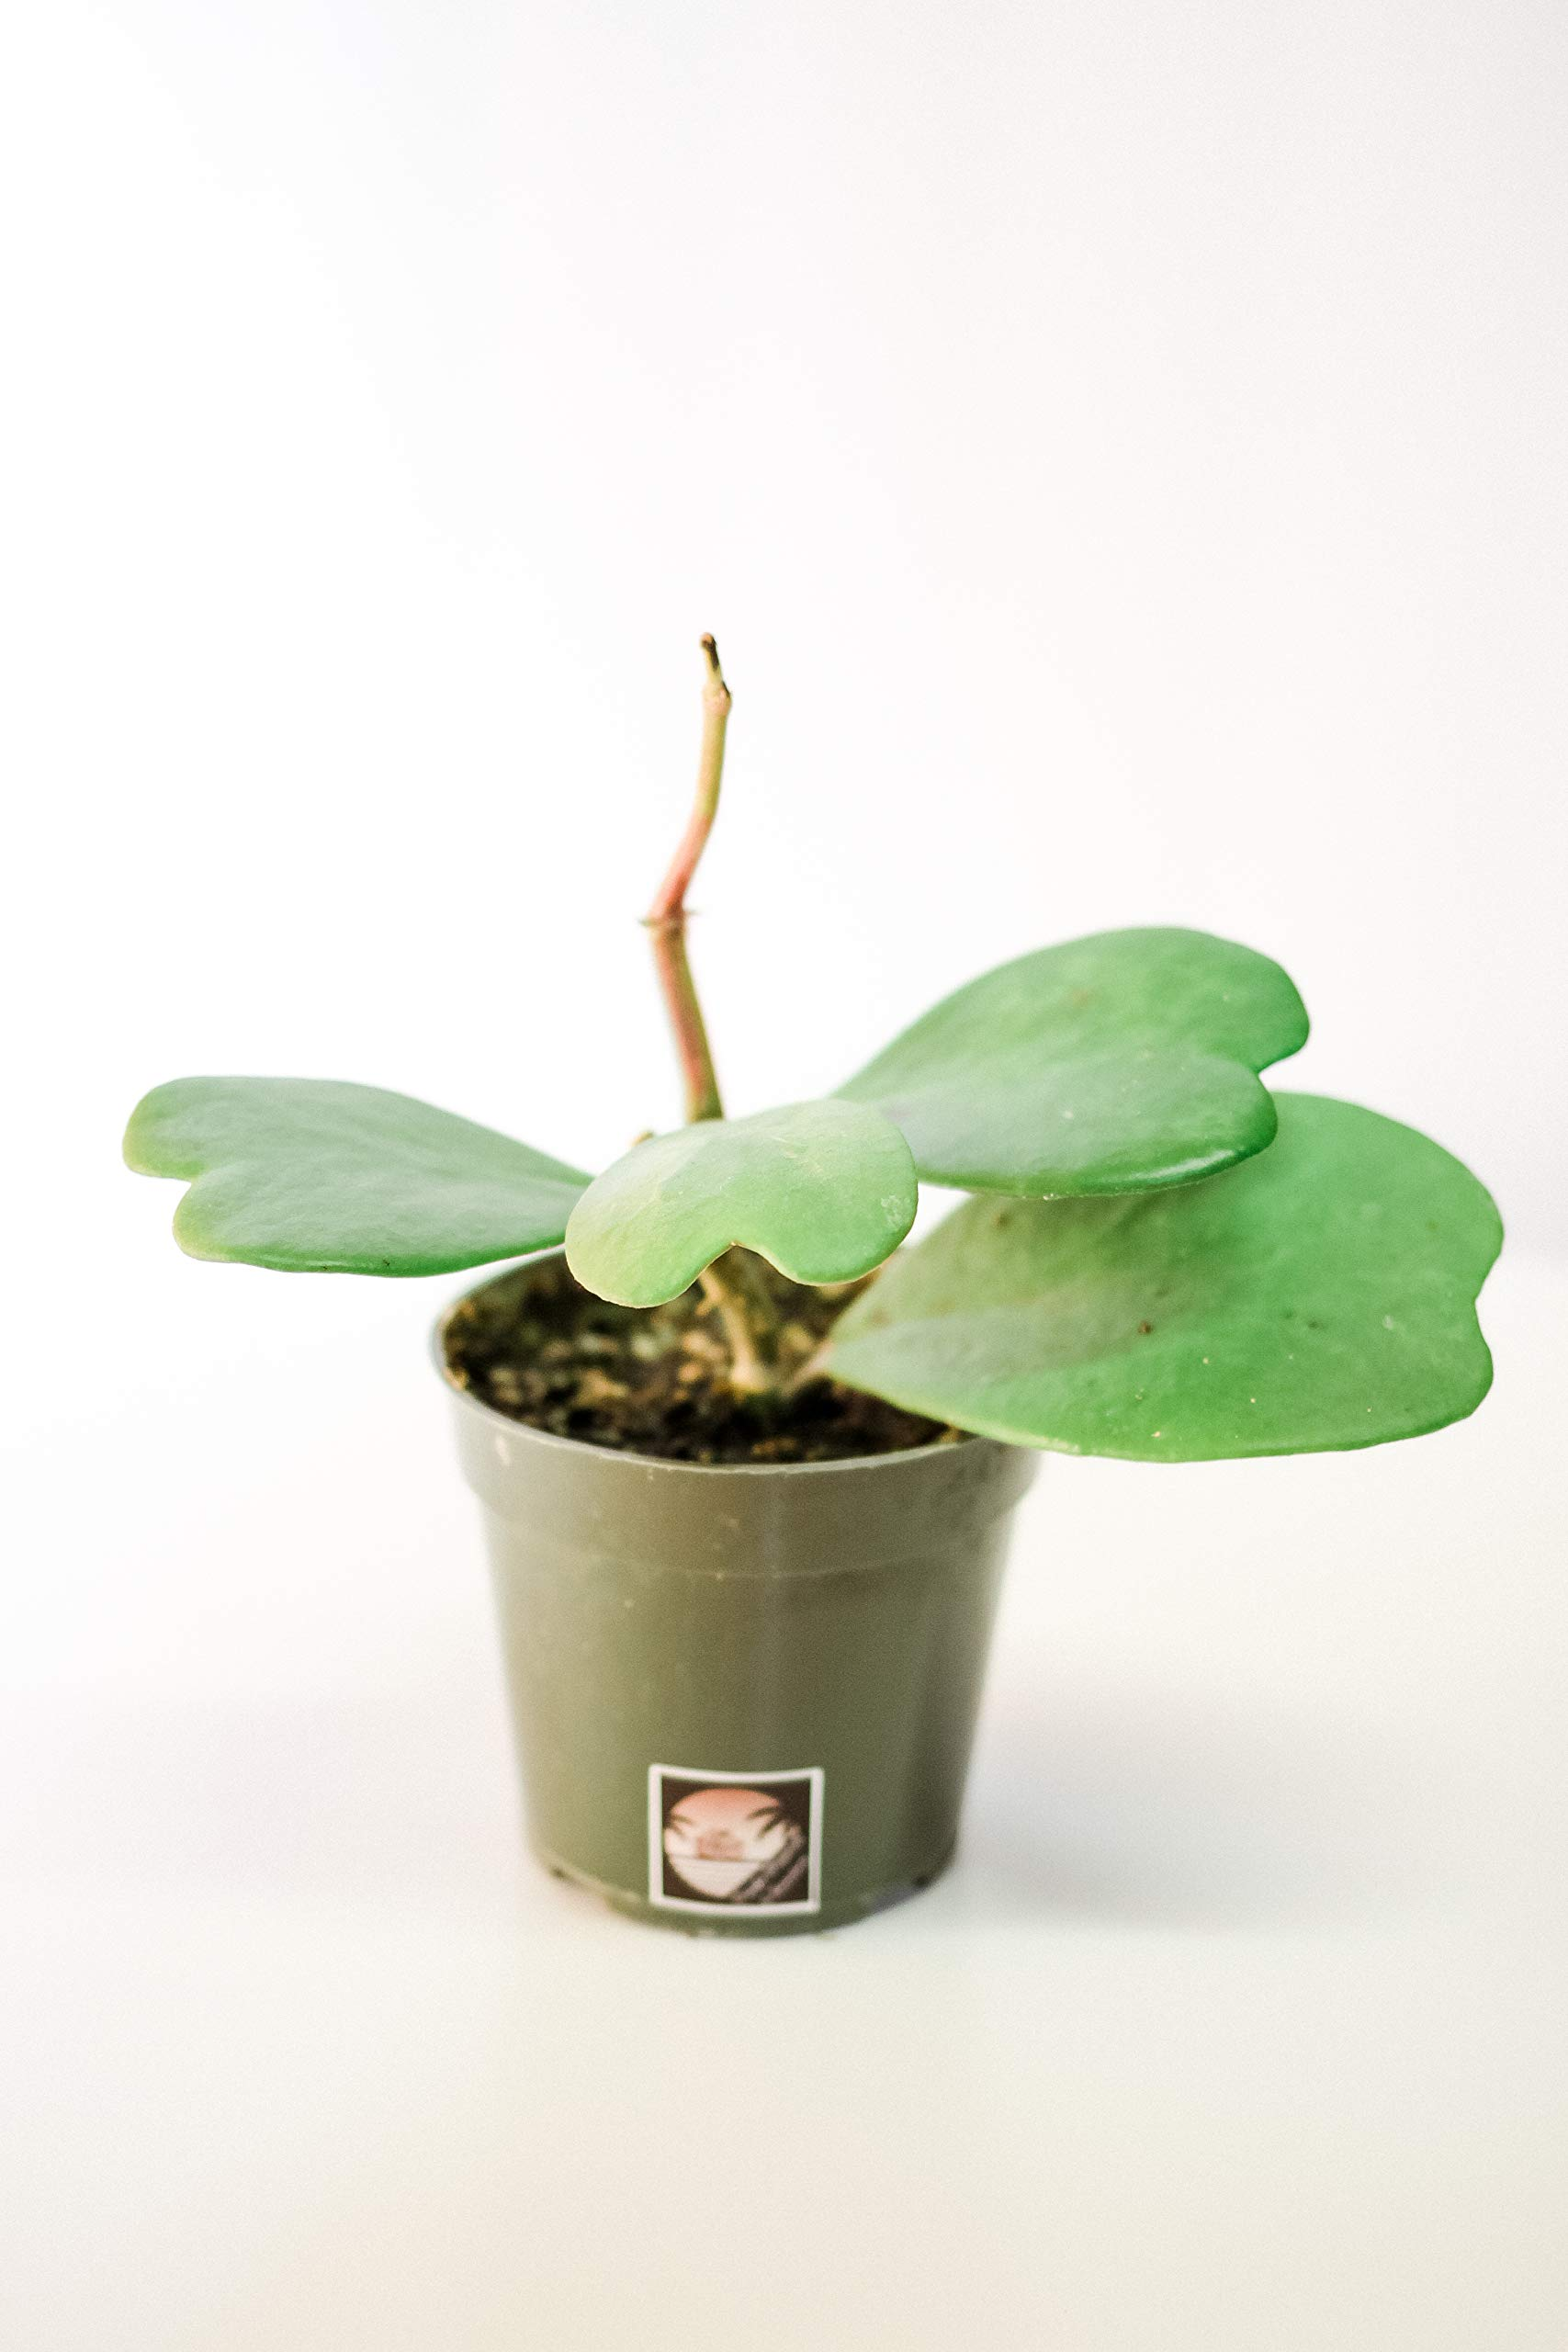 Pacific Tropicals &Succulents -Hoya Kerii Sweetheart Plant-Live Indoor Plant-Ships in 4 inch Grow Pot-Homegrown by Pacific Tropicals & Succulents (Image #2)